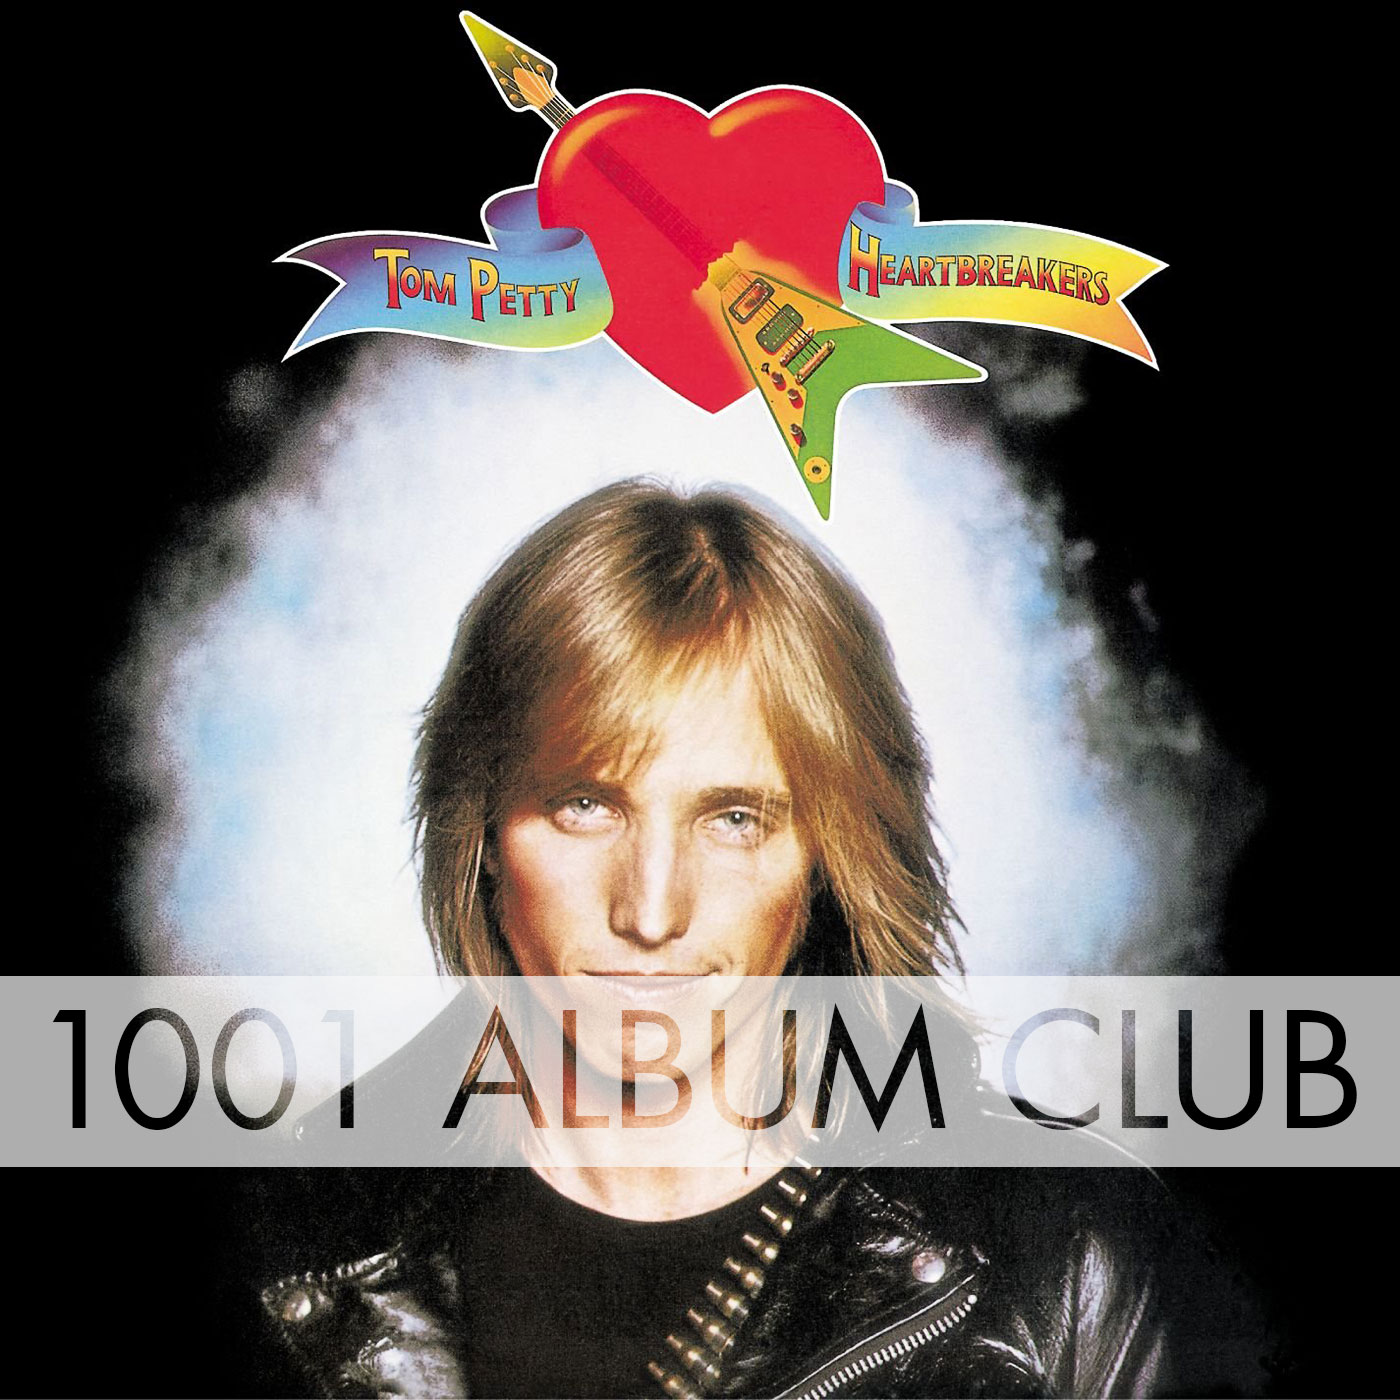 349 Tom Petty - Tom Petty and the Heartbreakers